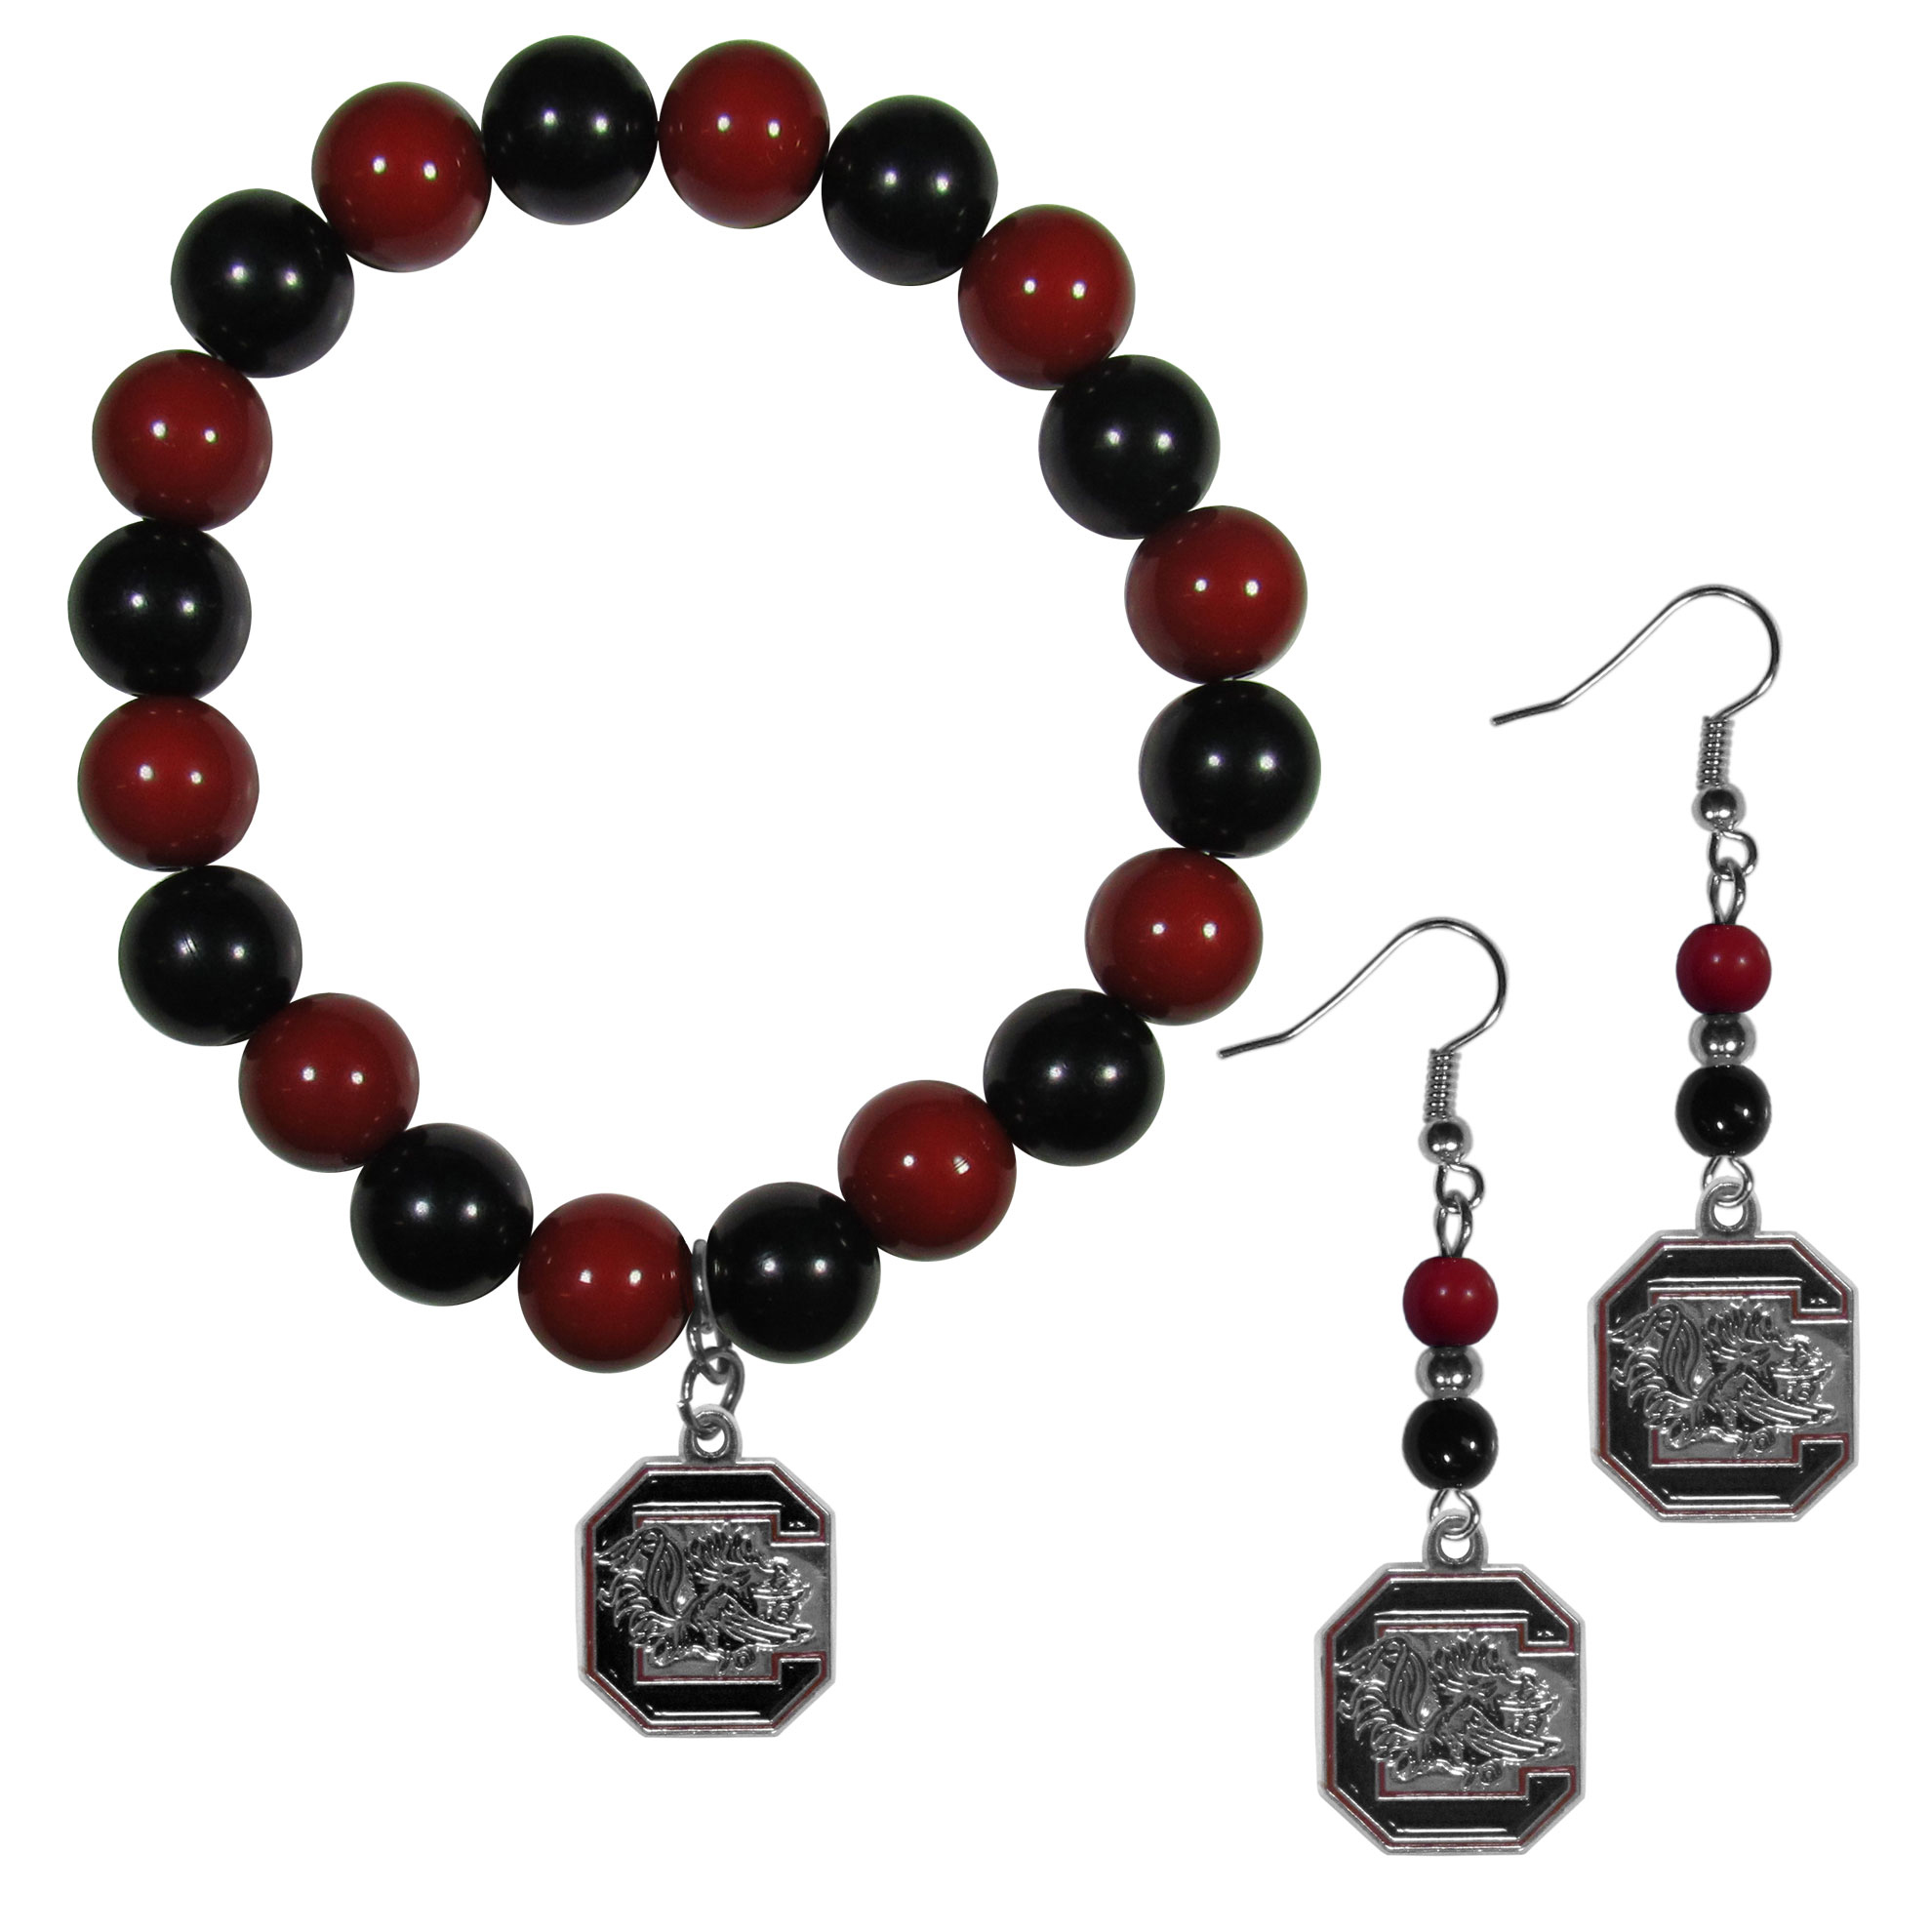 S. Carolina Gamecocks Fan Bead Earrings and Bracelet Set - This fun and colorful S. Carolina Gamecocks fan bead jewelry set is fun and casual with eye-catching beads in bright team colors. The fashionable dangle earrings feature a team colored beads that drop down to a carved and enameled charm. The stretch bracelet has larger matching beads that make a striking statement and have a matching team charm. These sassy yet sporty jewelry pieces make a perfect gift for any female fan. Spice up your game-day outfit with these fun colorful earrings and bracelet that are also cute enough for any day.